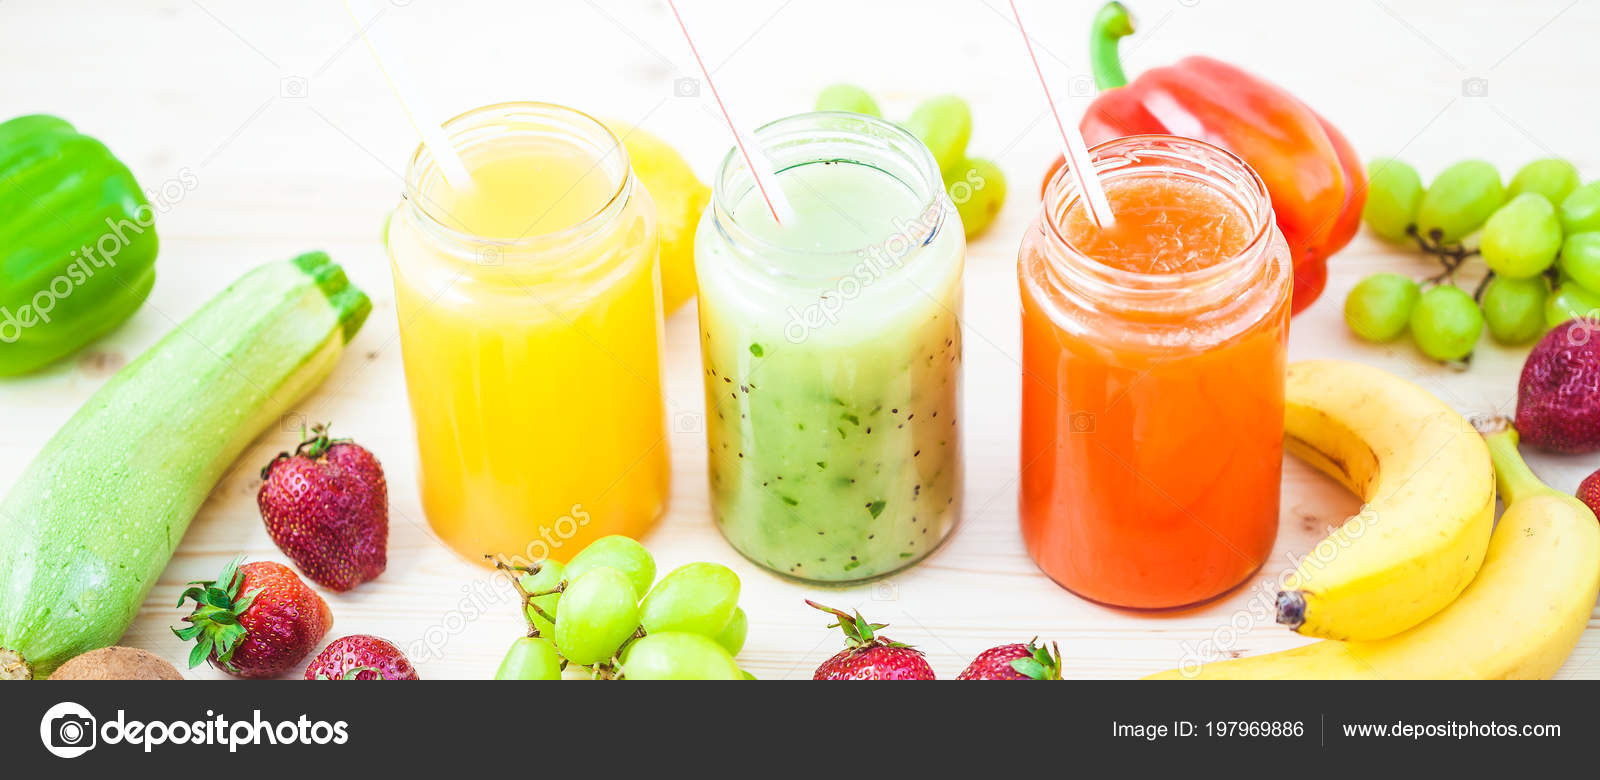 Freshly Squeezed Fruit Juice Smoothies Yellow Orange Green Blue Banana Stock Photo C Natalya Stepowaya 197969886